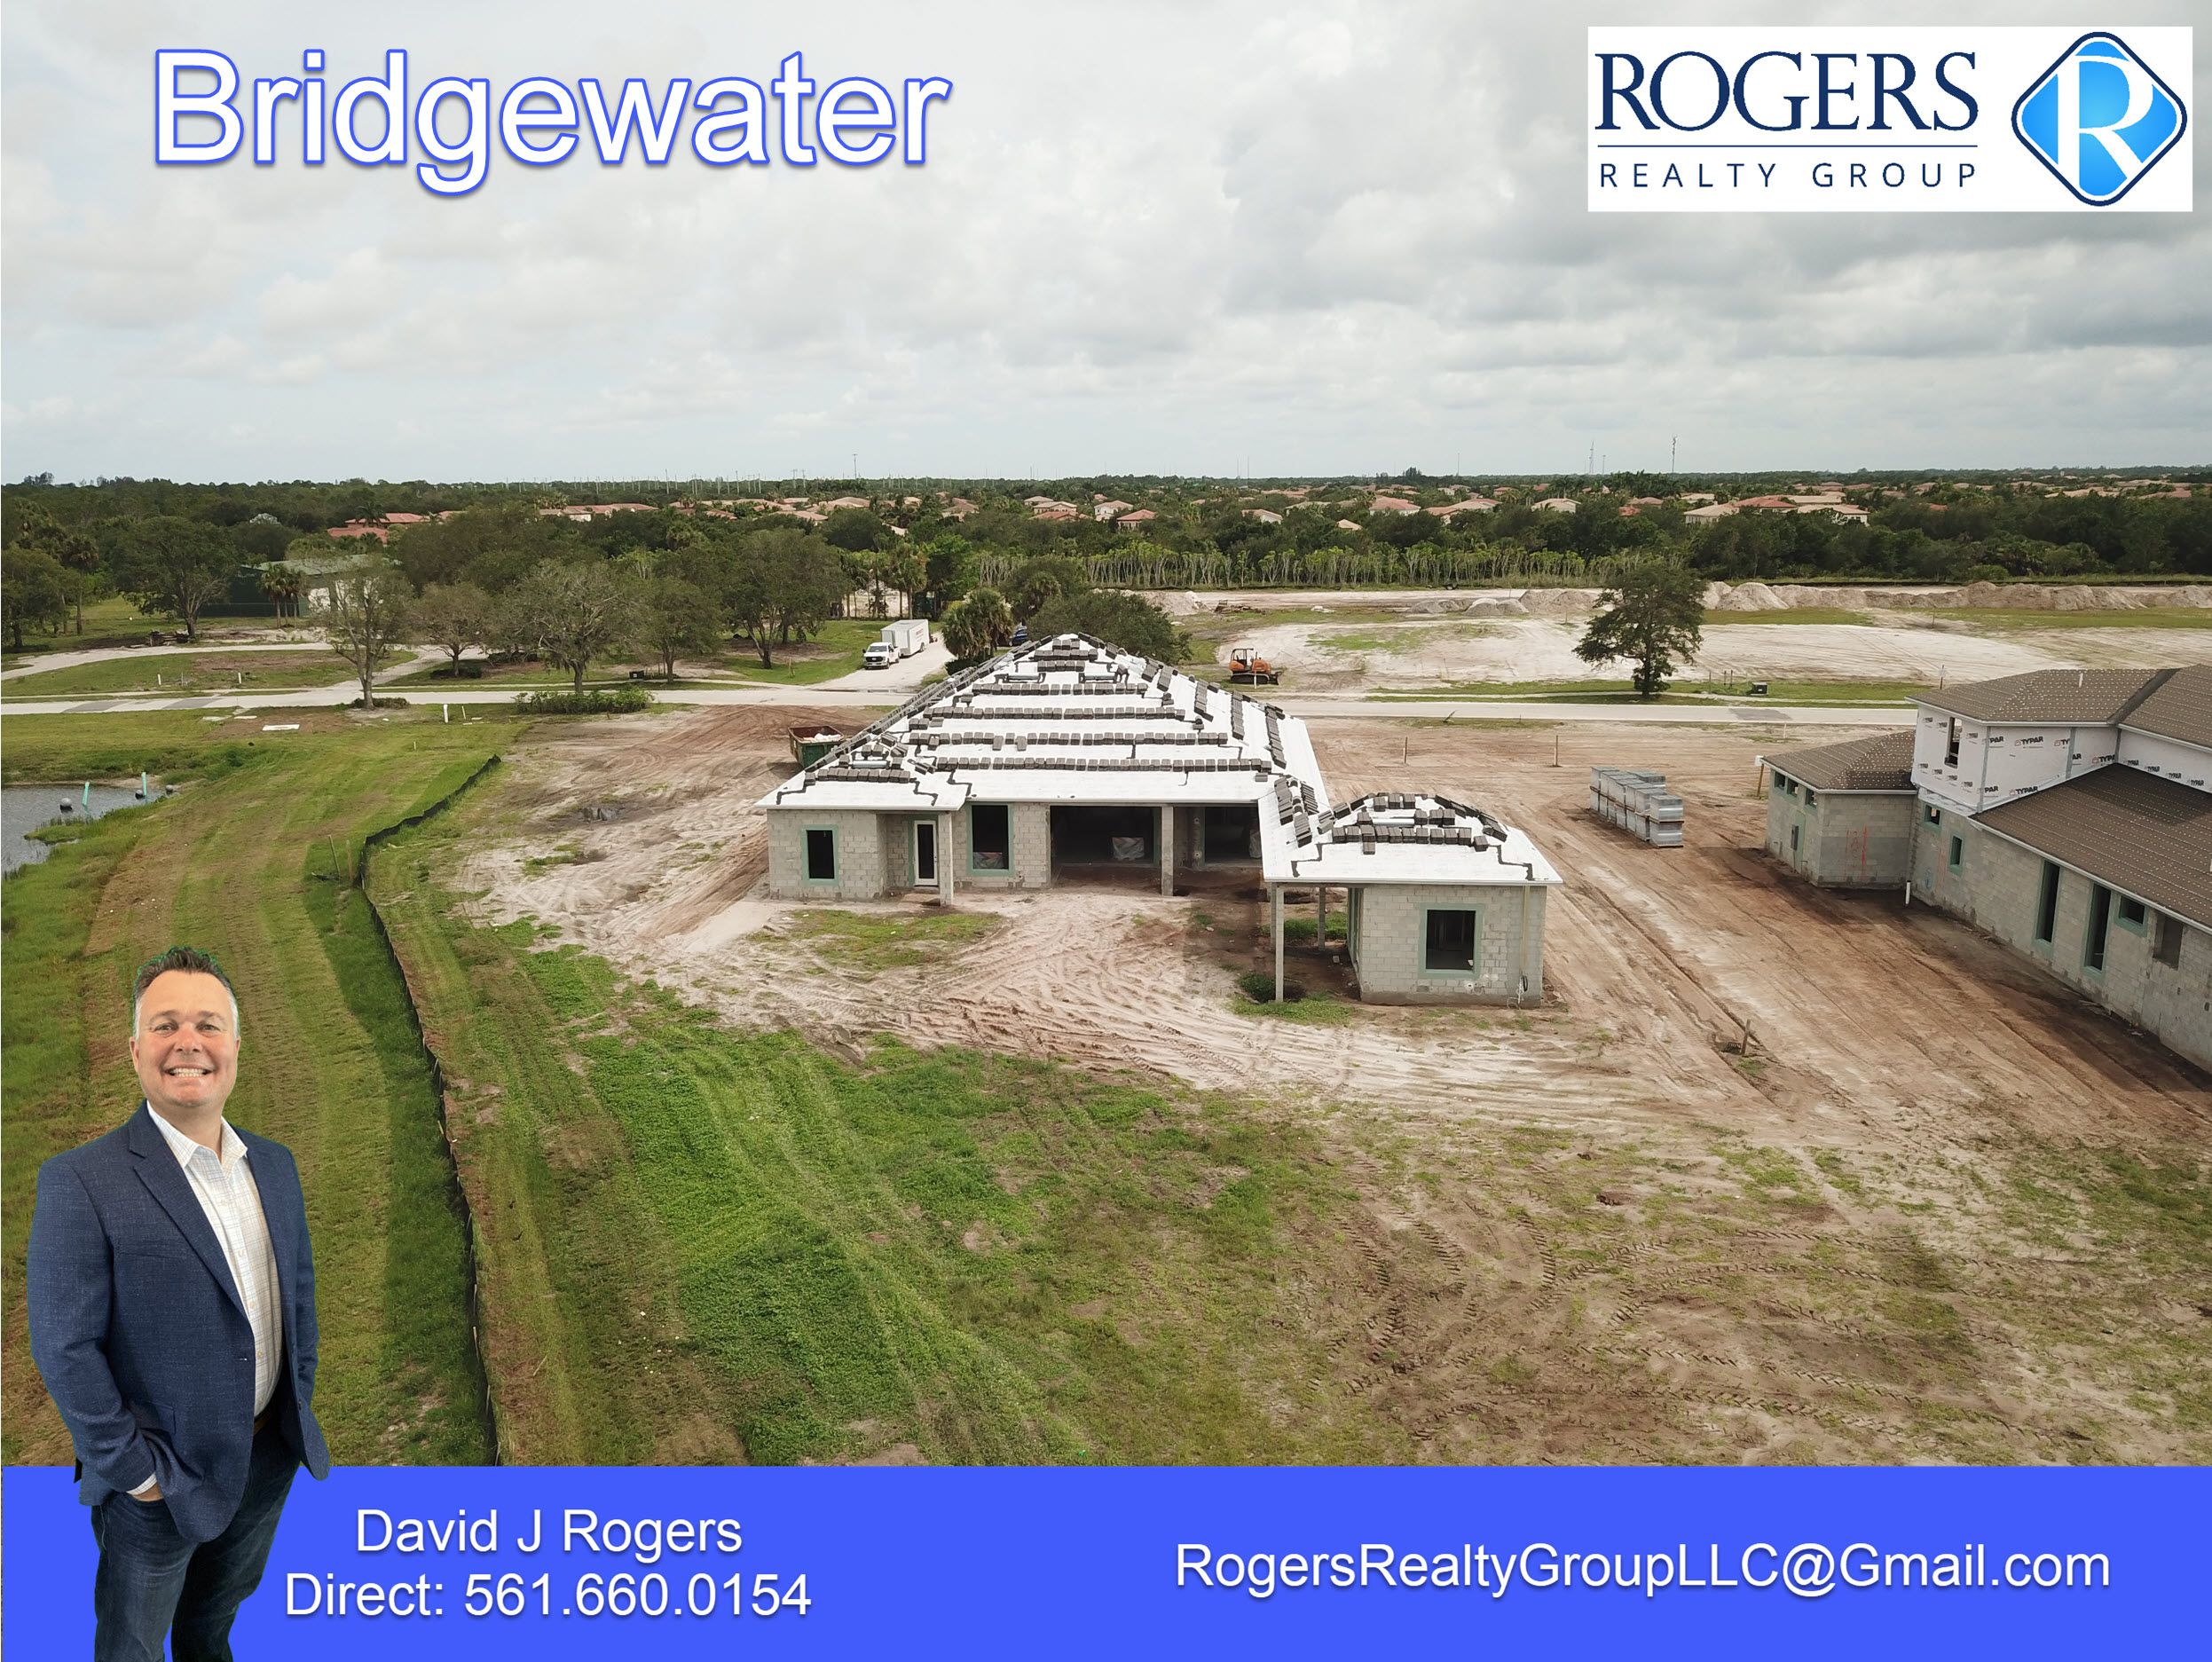 rear view of new construction luxury home on lot 34 in bridgewater community in jupiter fl